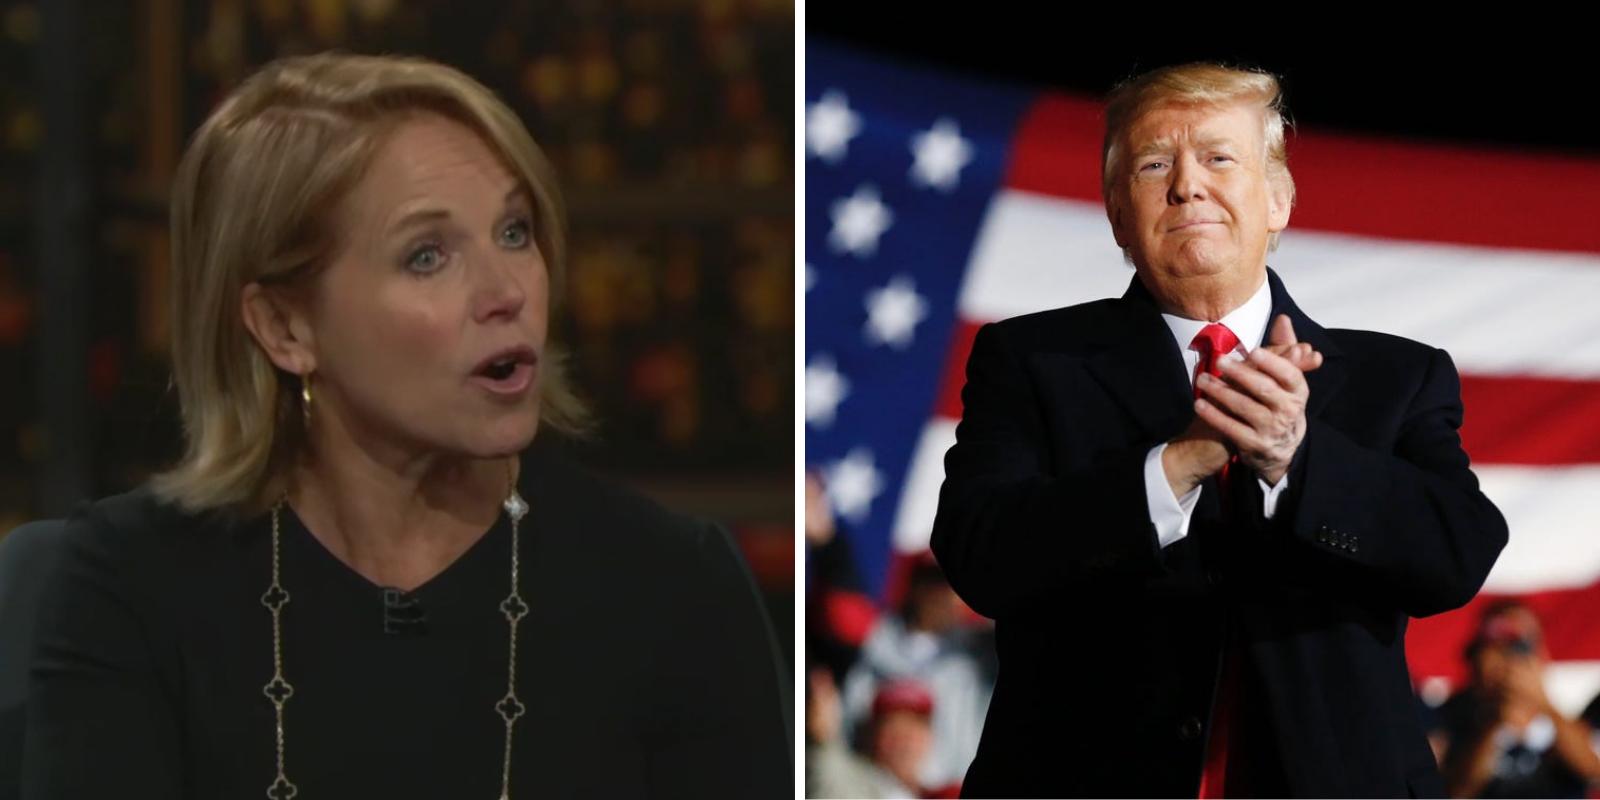 WATCH: Katie Couric says Trump supporters need to be 'deprogrammed'